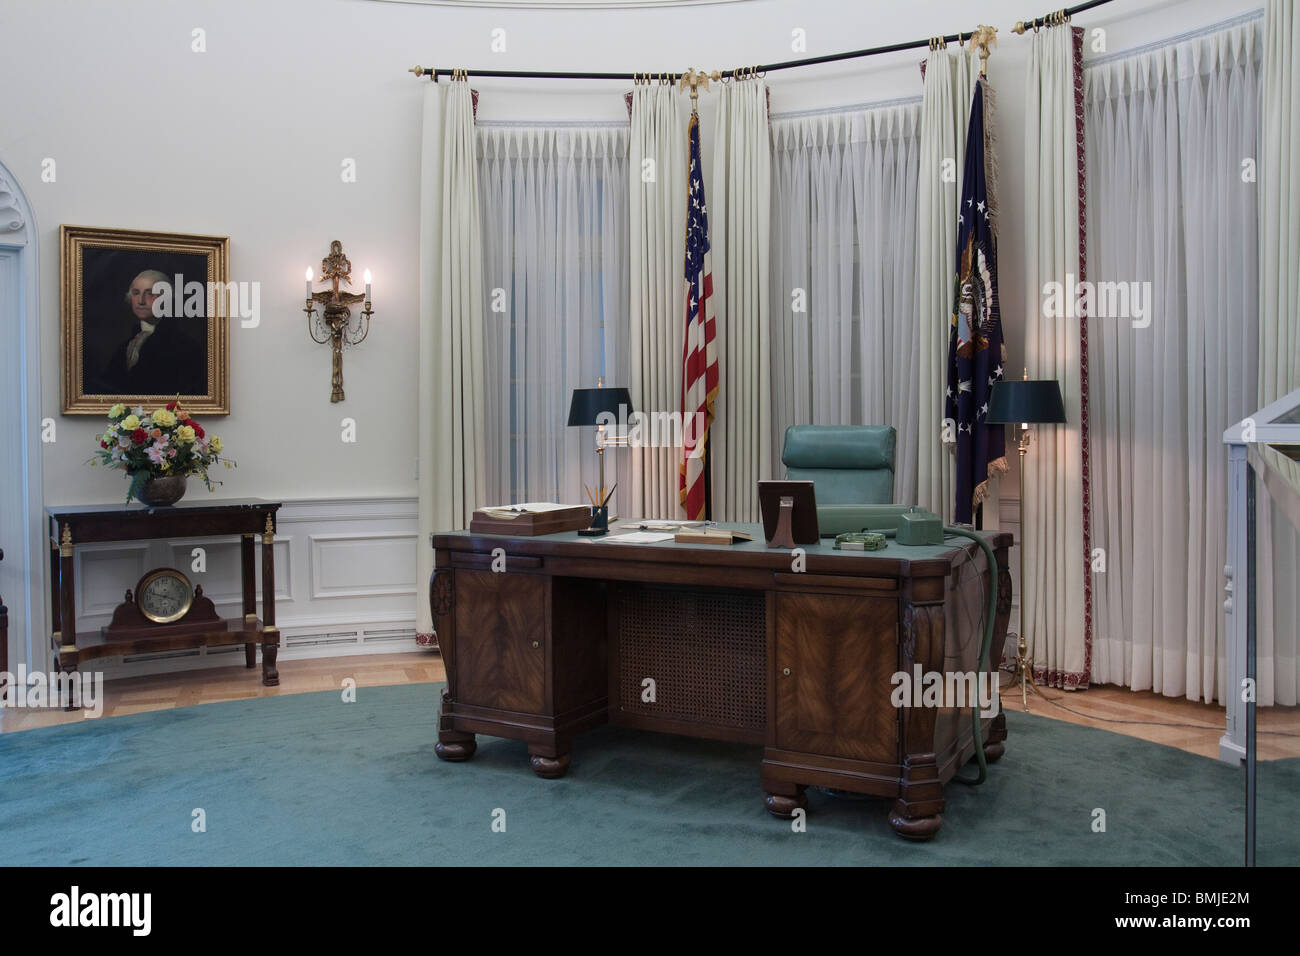 Replica Of Oval Office Desk During LBJ 39 S Term At Lyndon B